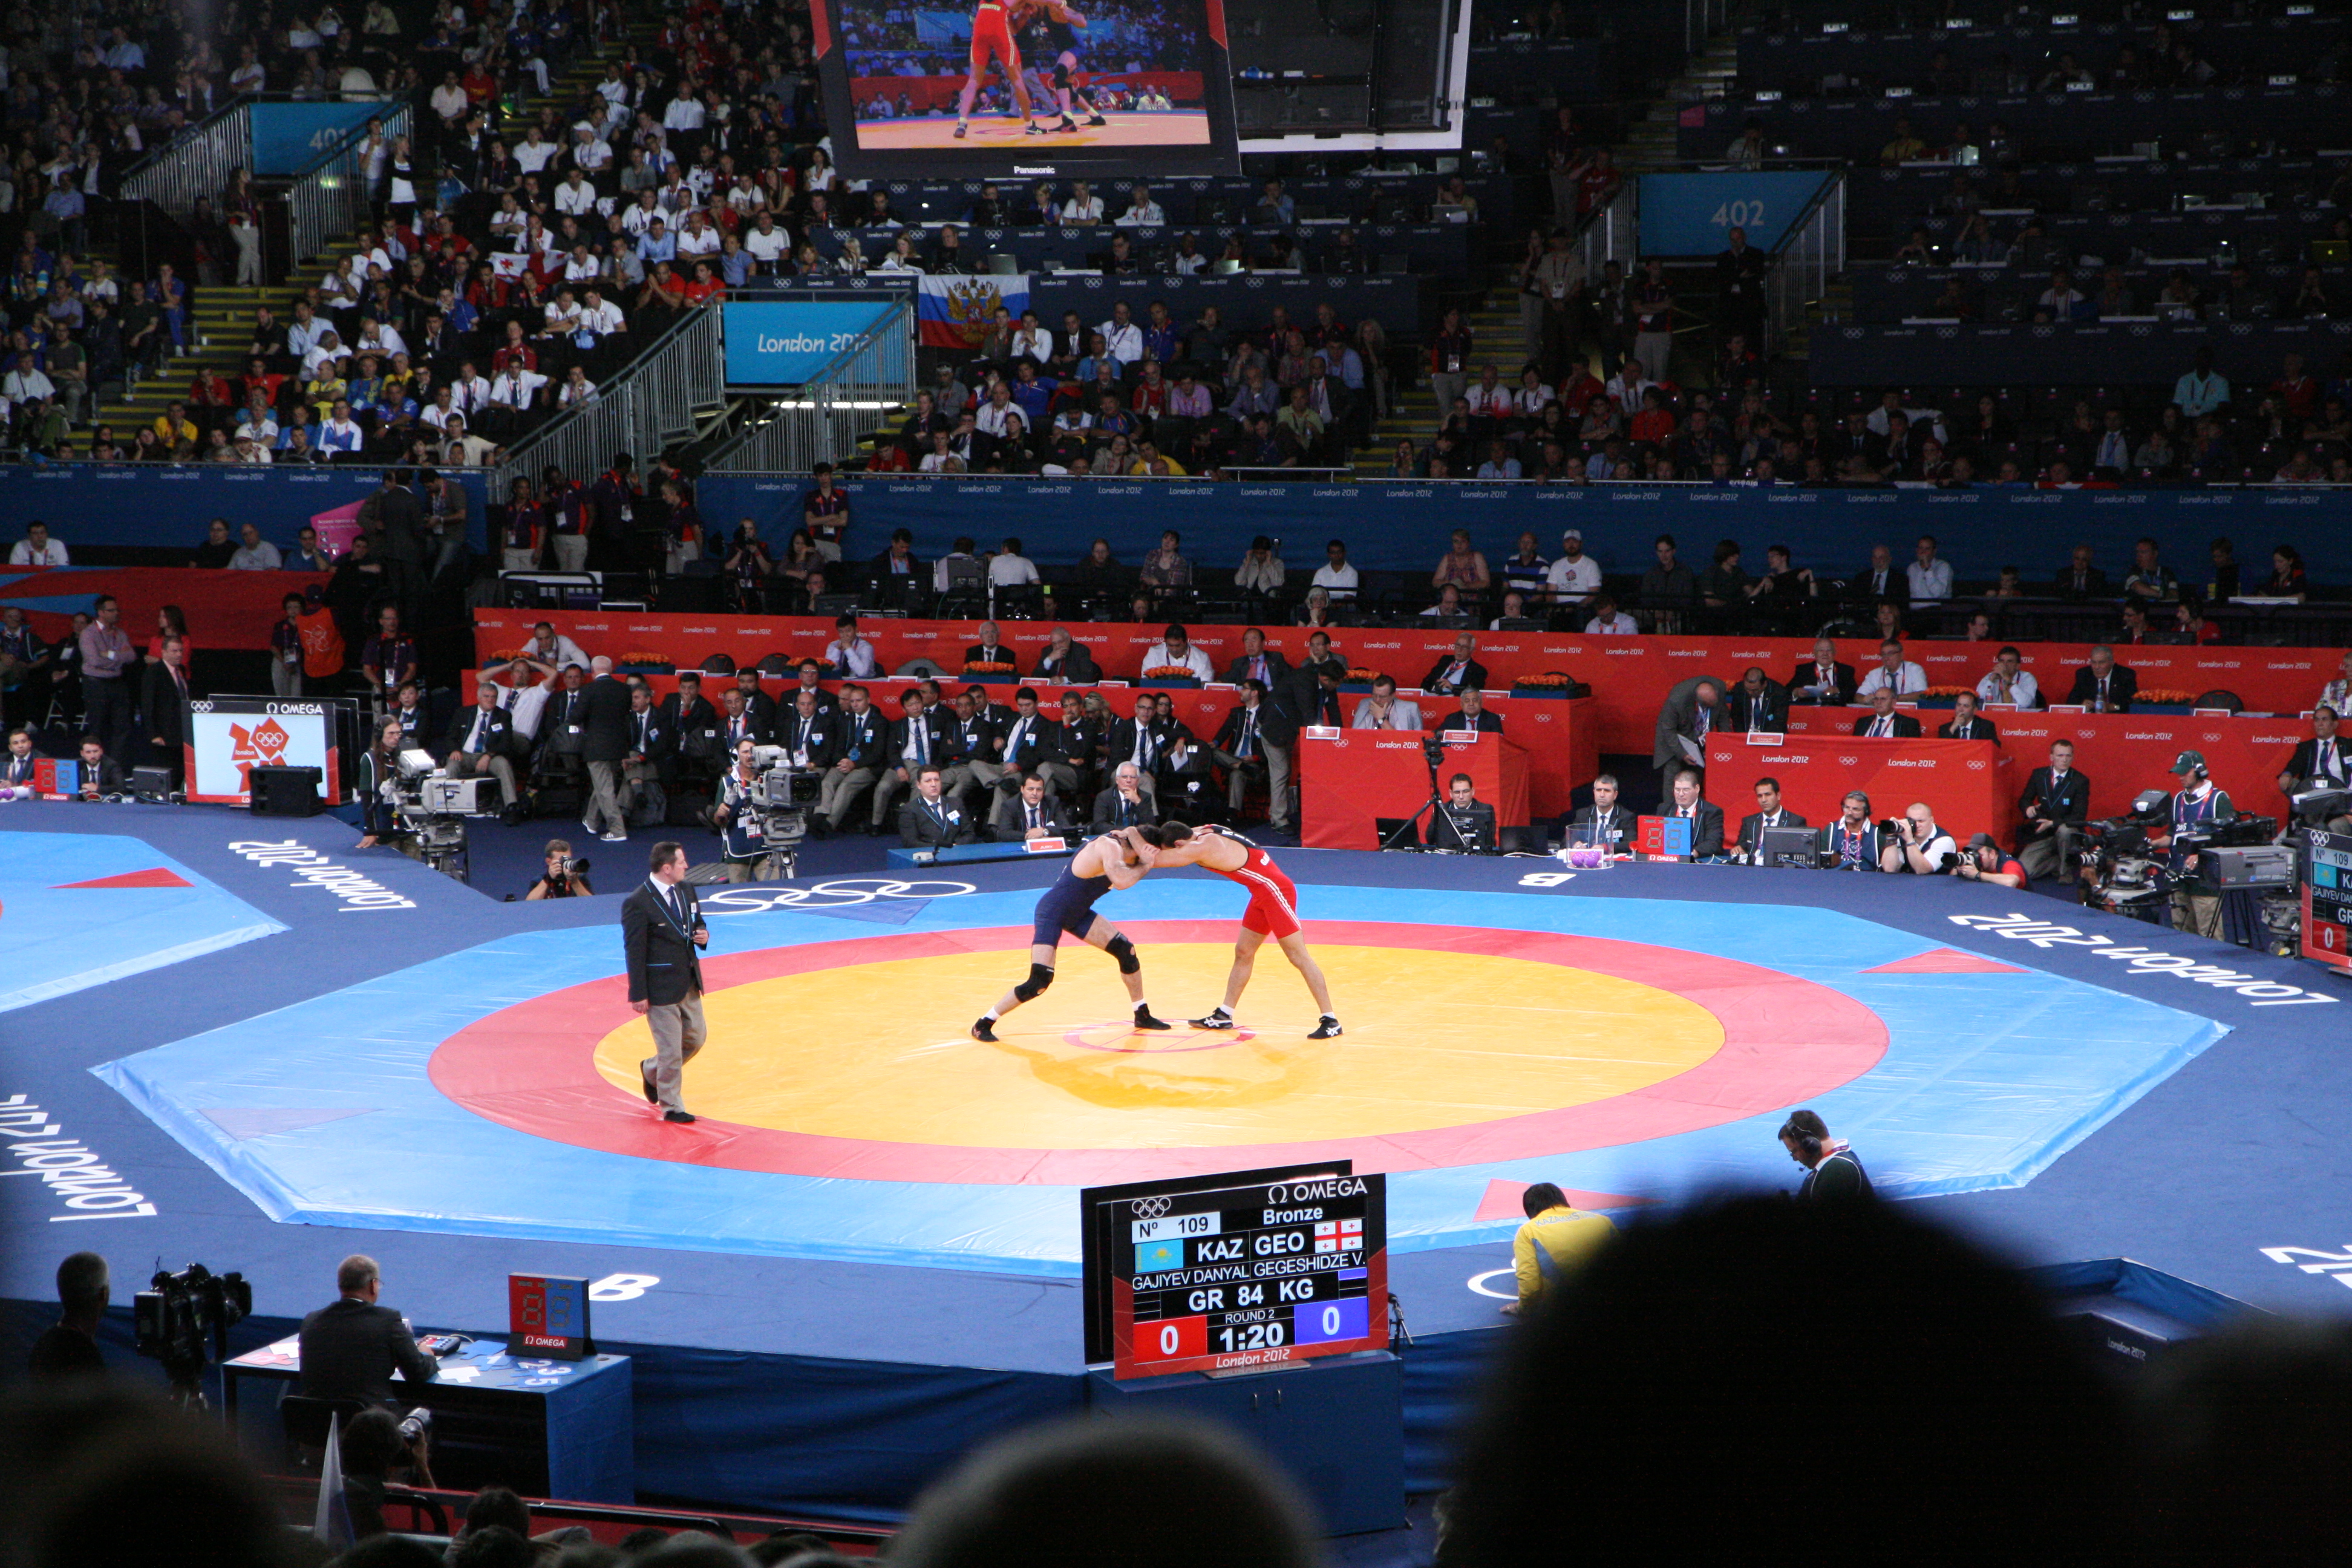 wrestlers at the 2012 summer olympics